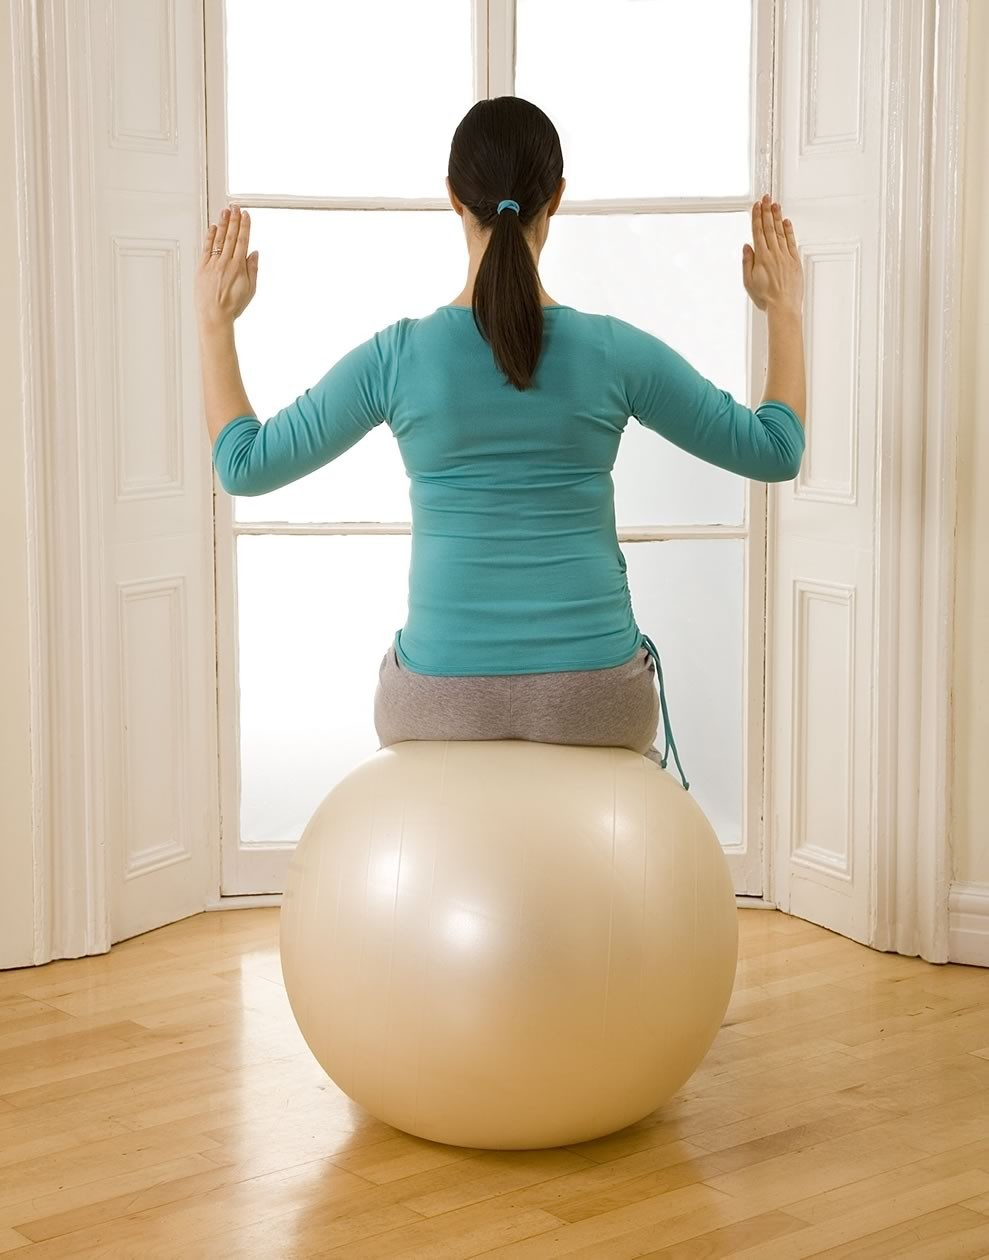 banishing-your-baby-weight-4-new-exercise-techniques-to-get-you-back-in-shape_1345